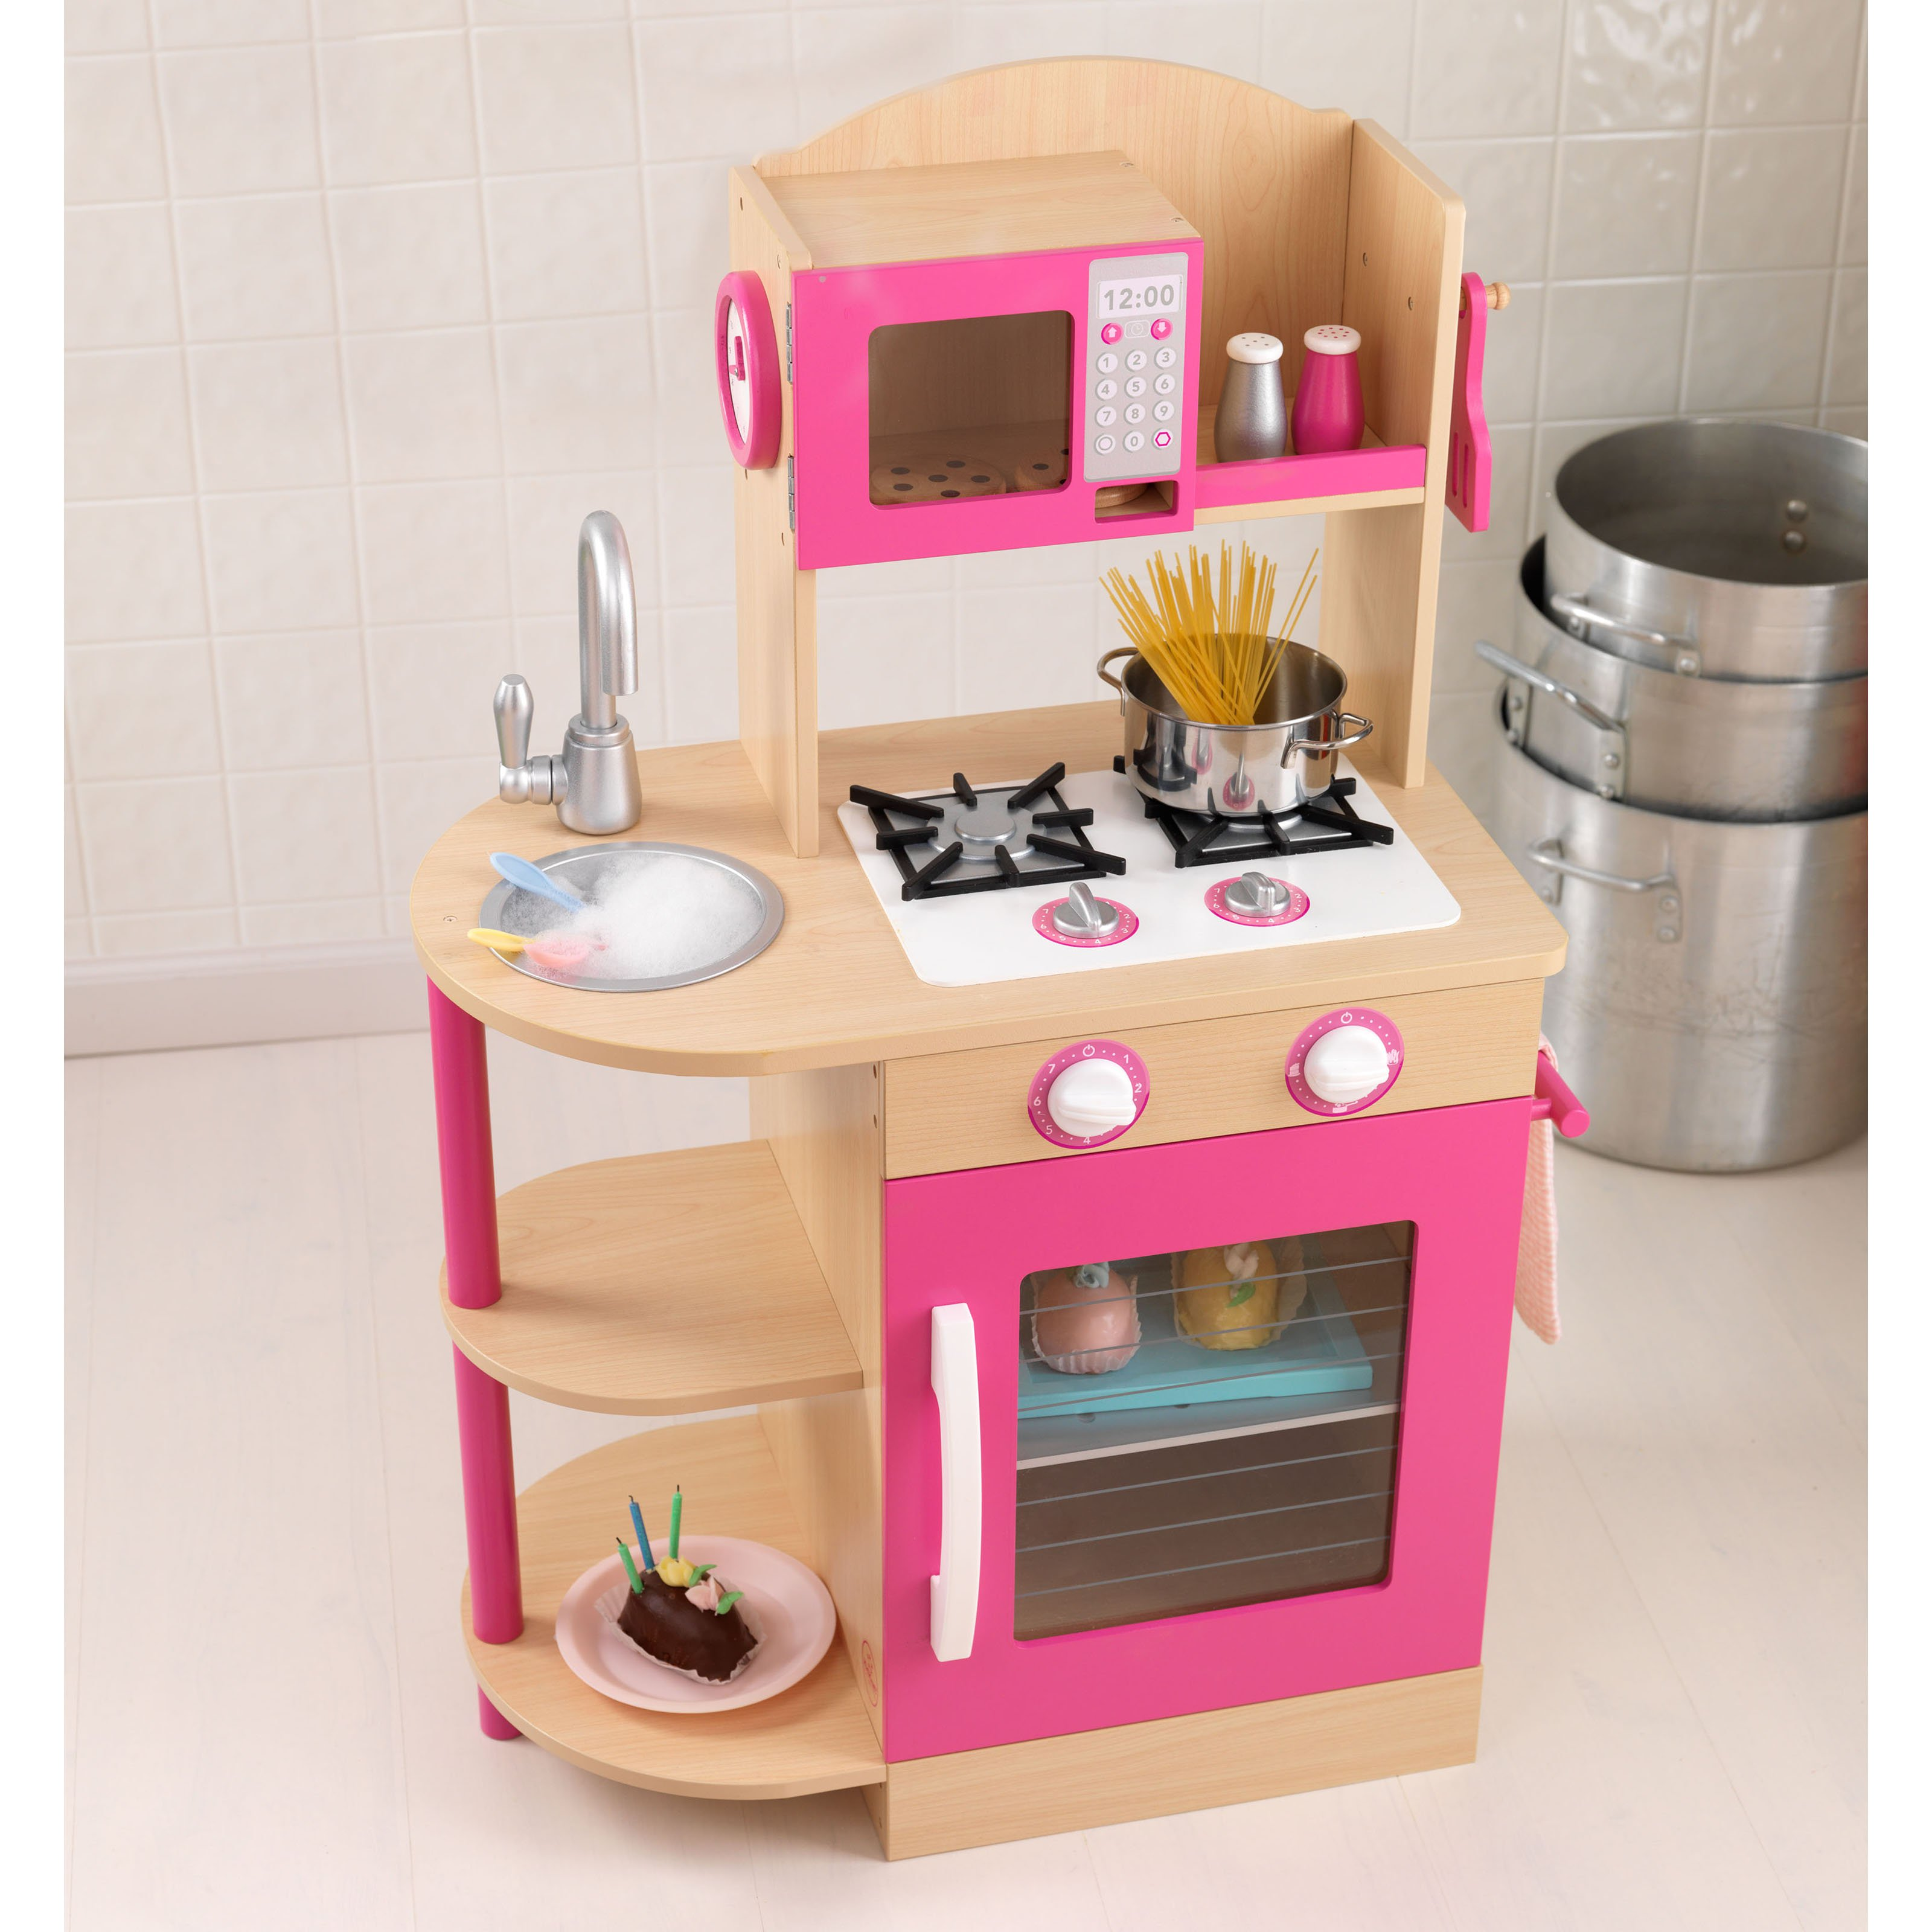 kidkraft wooden play kitchen - interior design